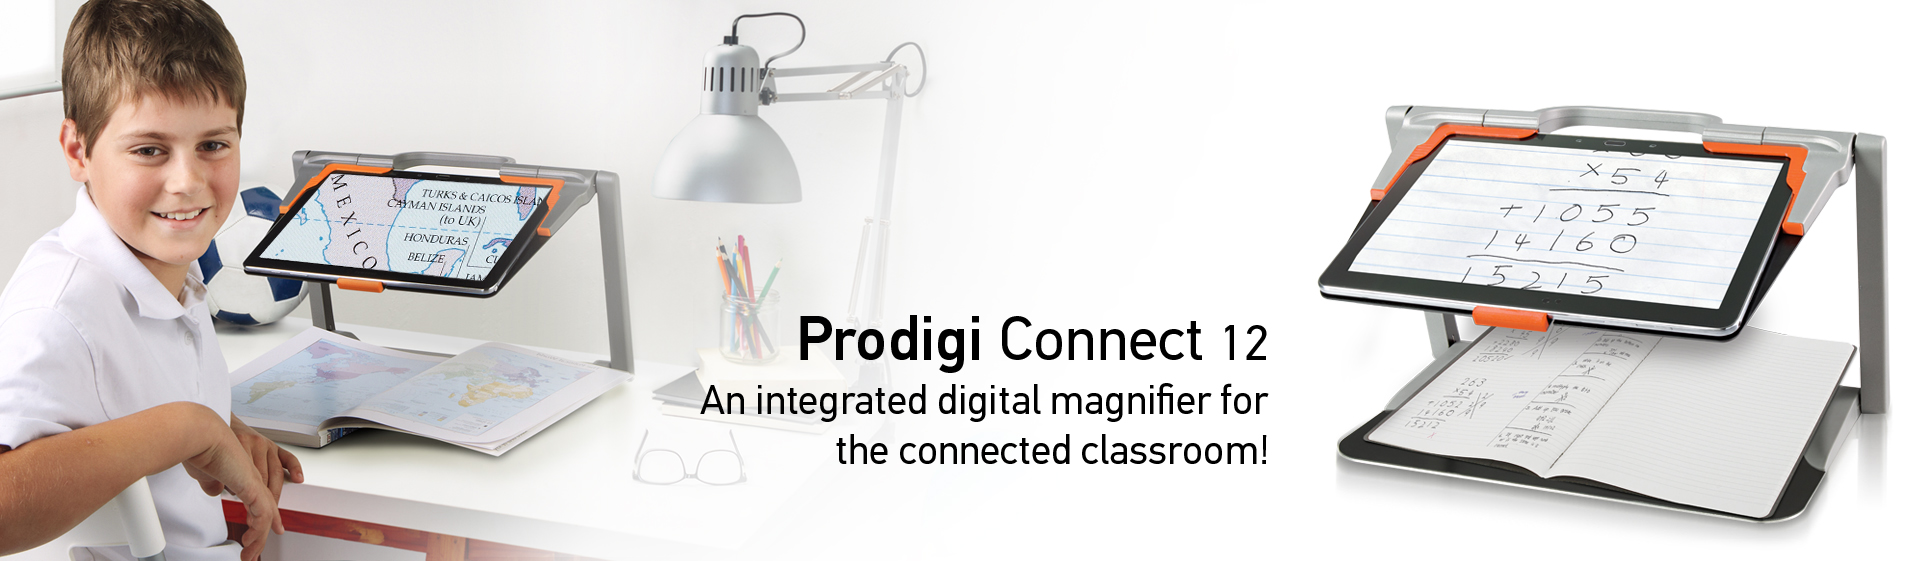 Prodigi Connect 12 - An Integrated digital magnifier for the connected classroom